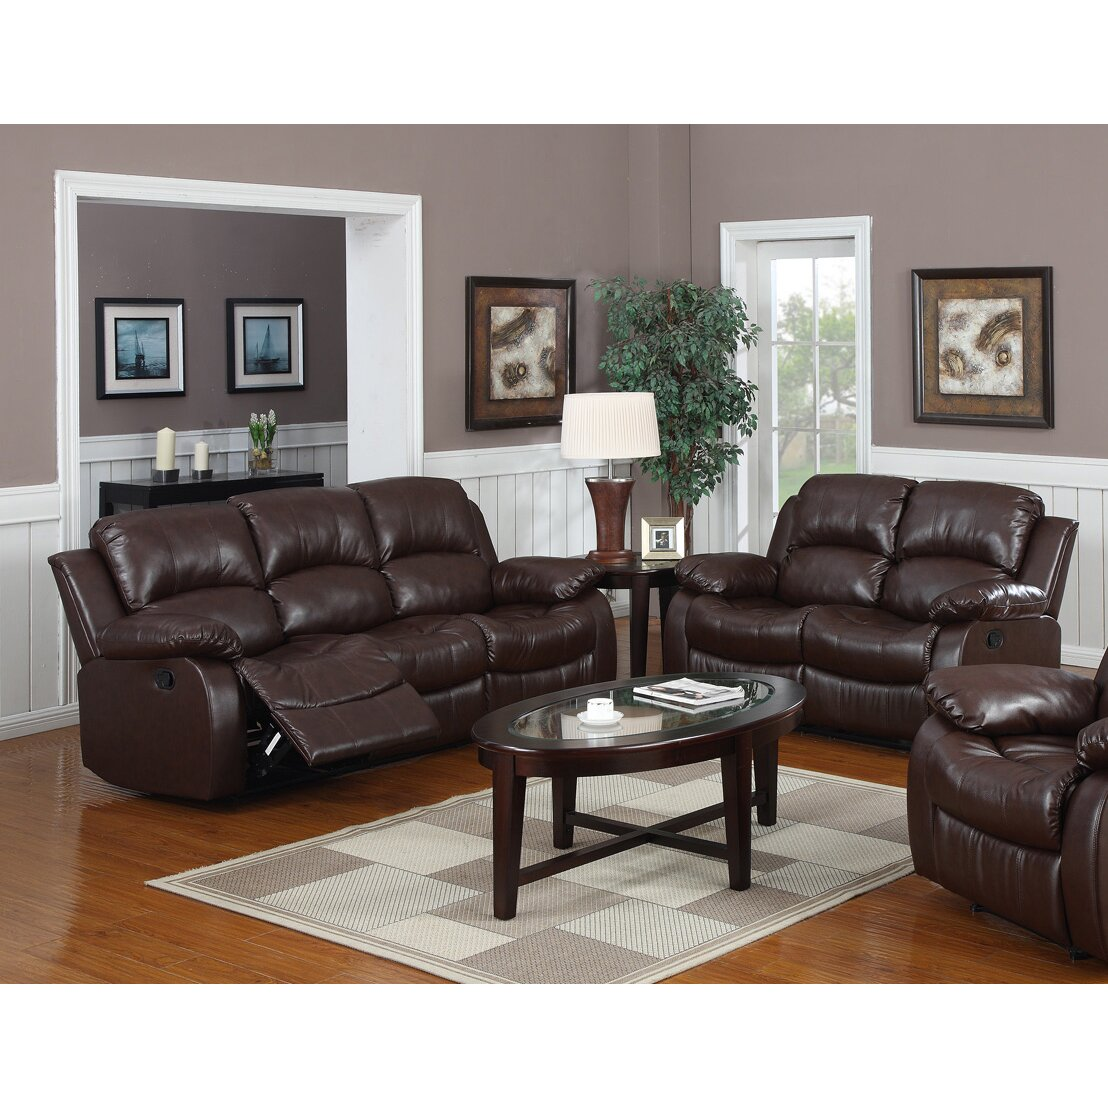 Latitude run bryce 2 piece reclining living room set for Wg r living room sets